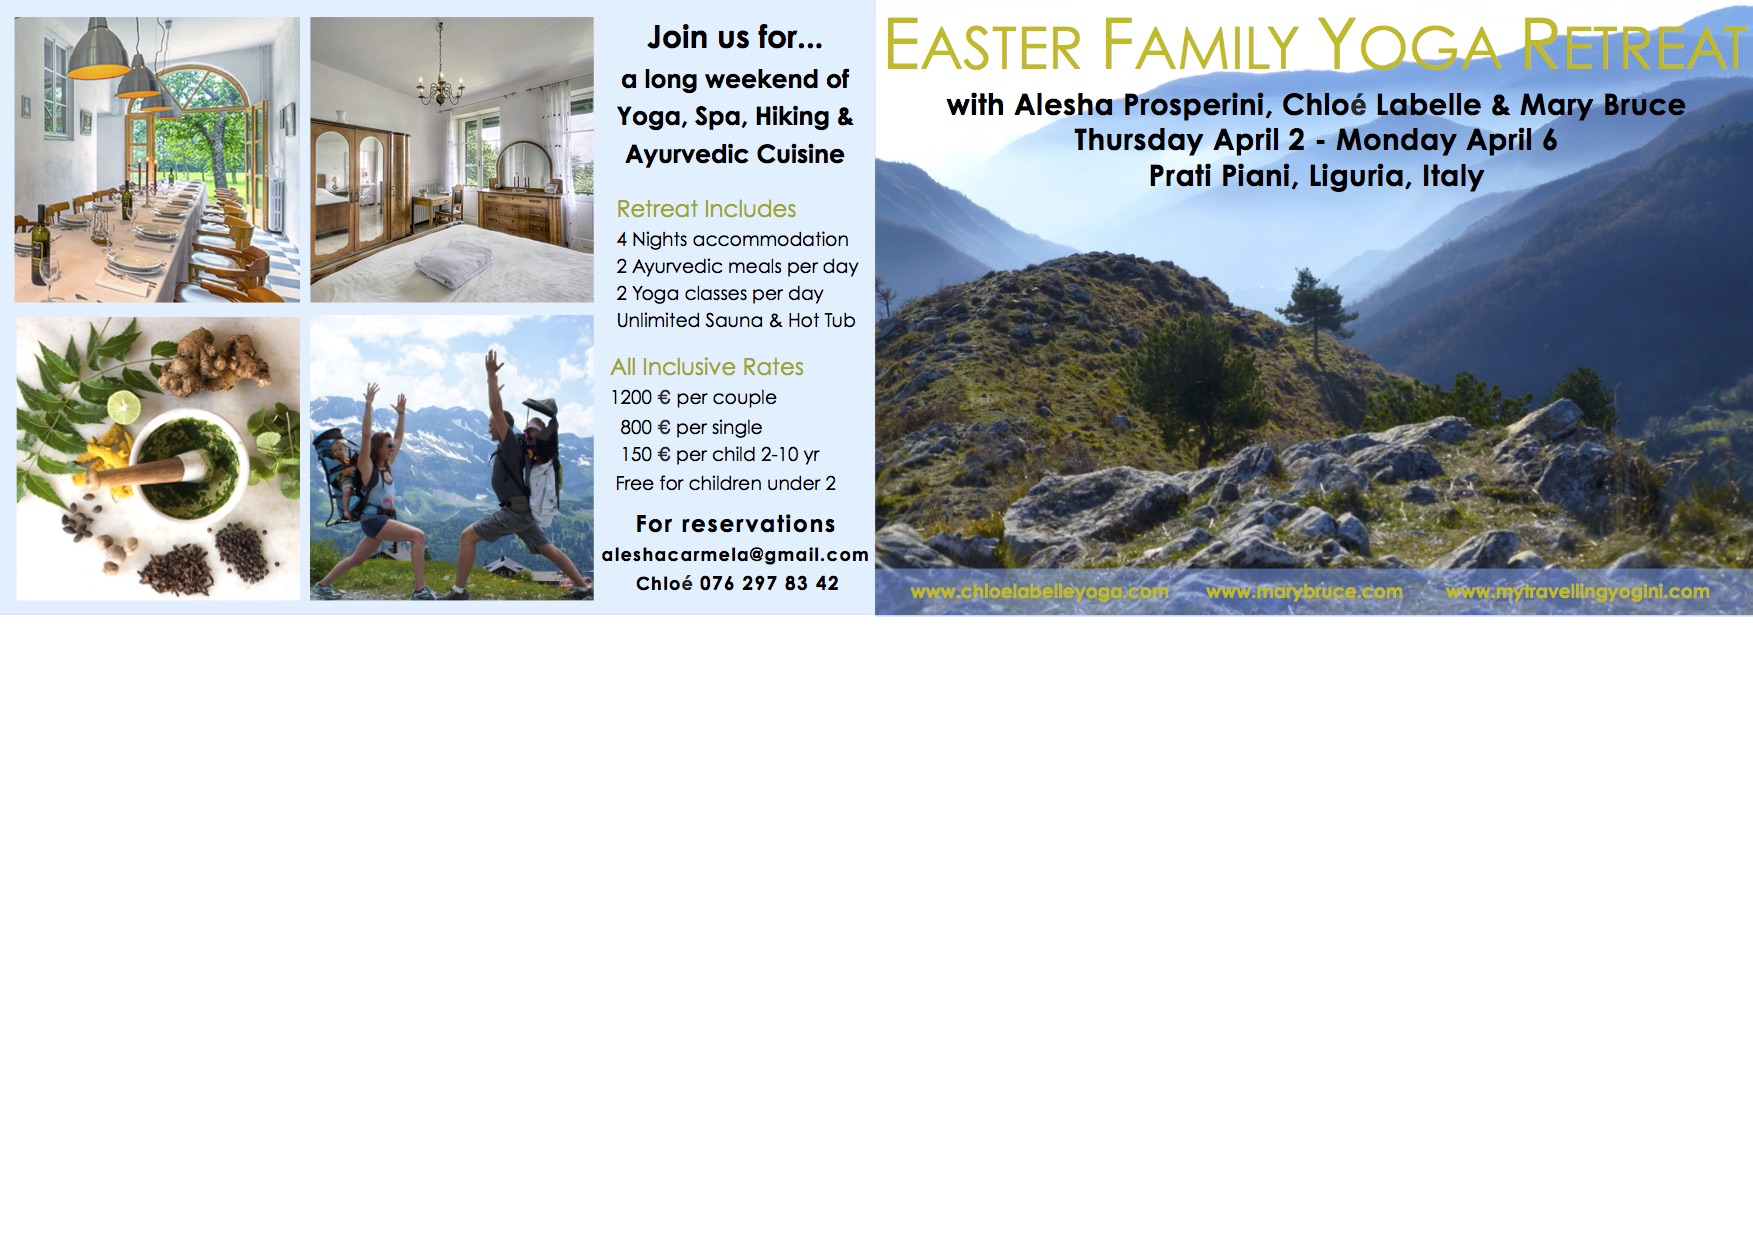 Easter Family Yoga Retreat Postcard - Alesha